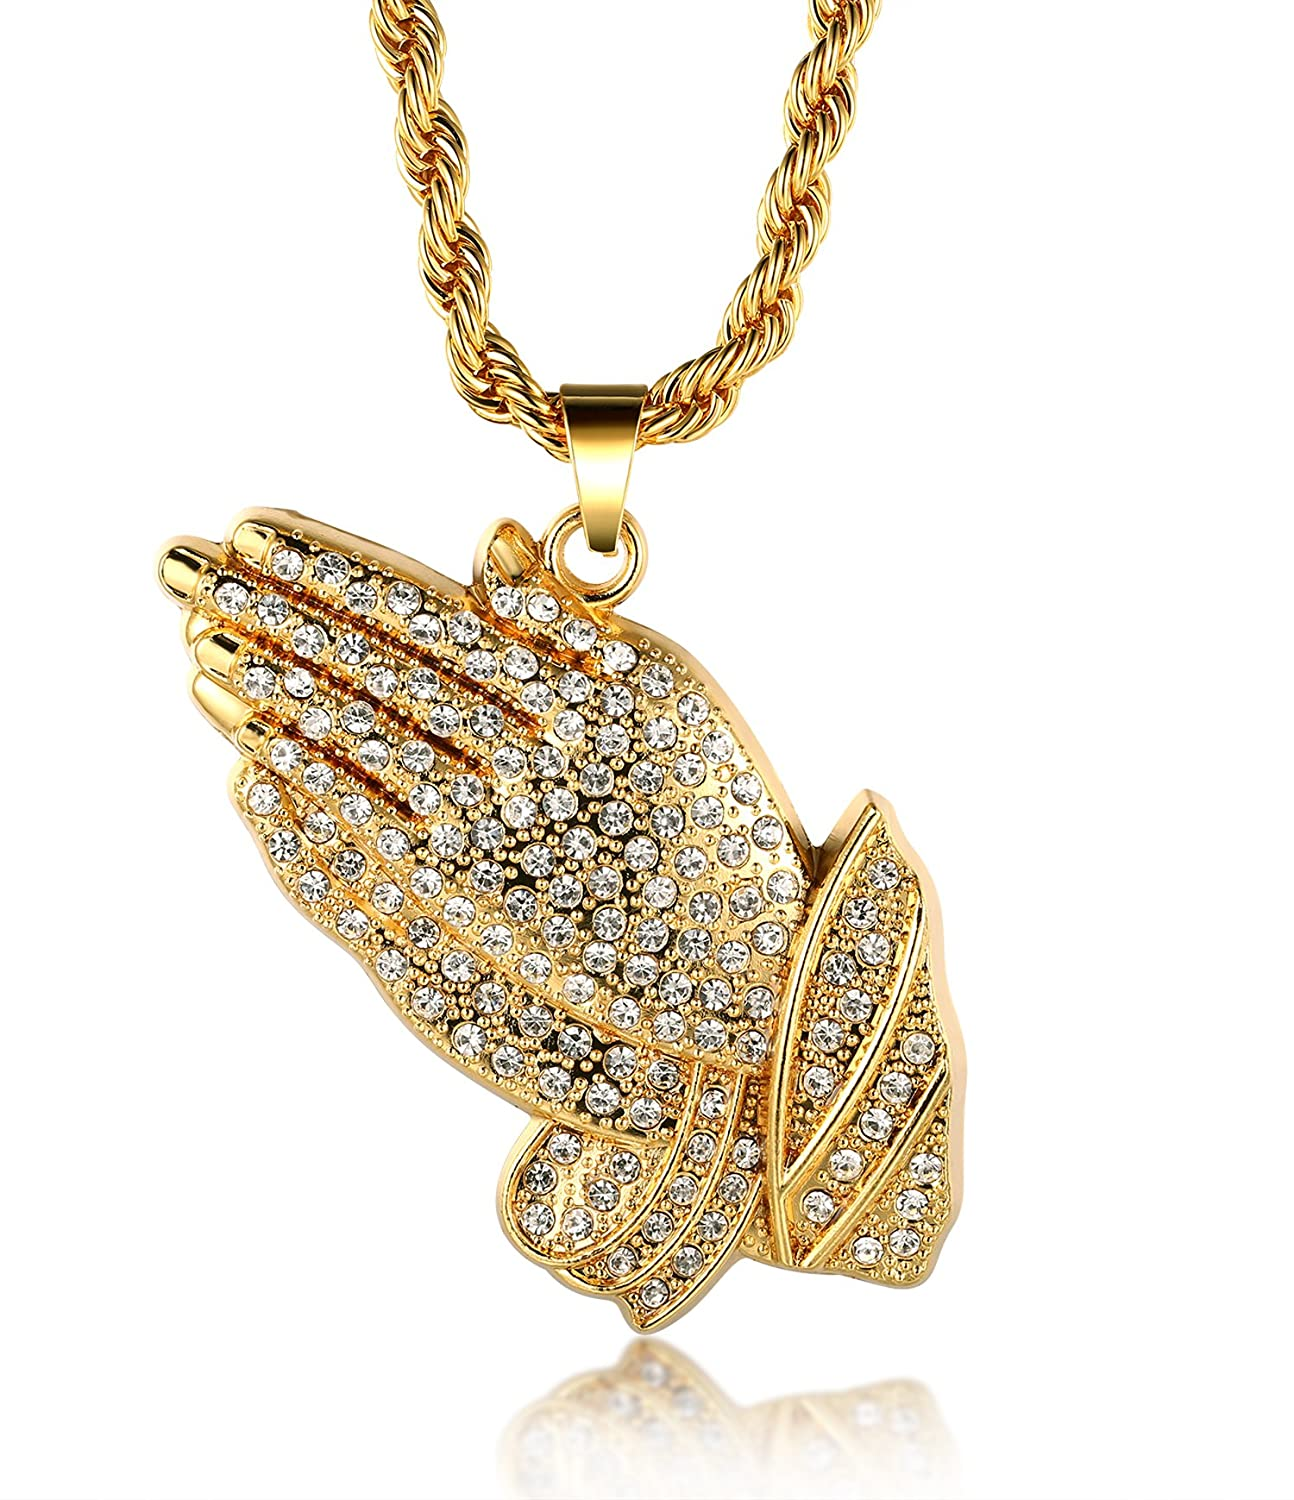 for recipient h necklaces number jewellery chain webstore s samuel men him gold category product pendant l curb